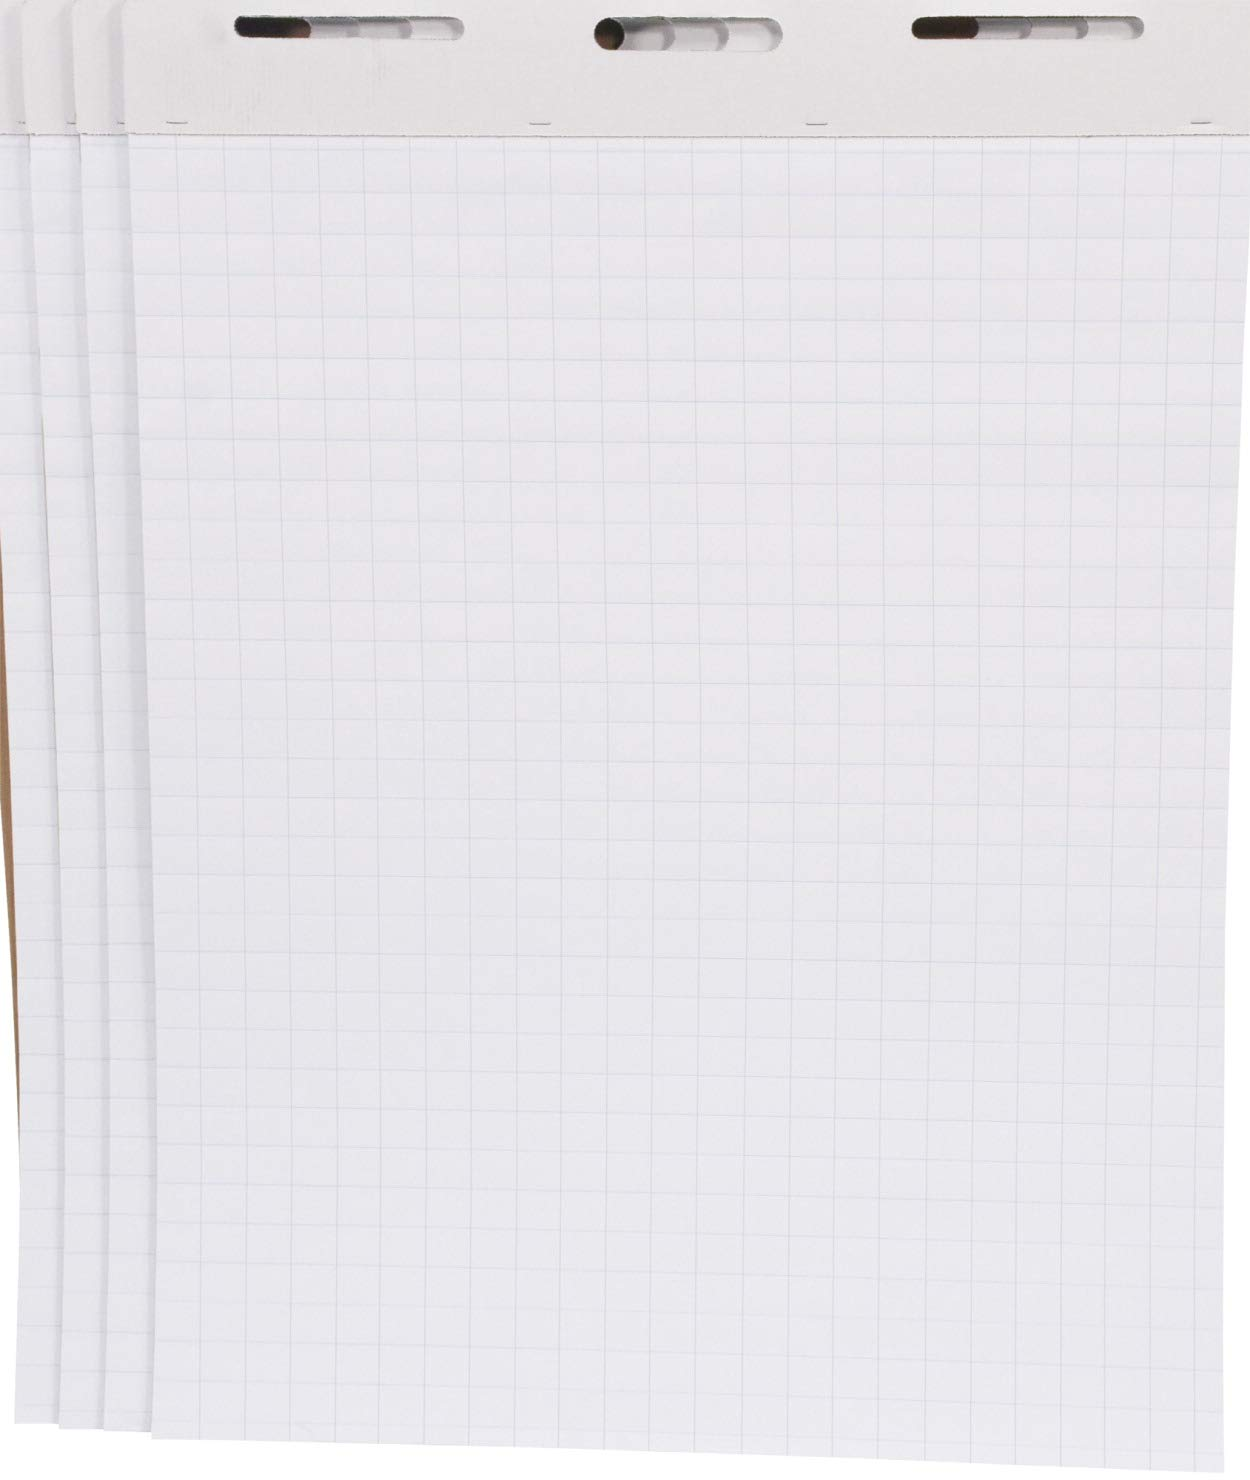 School Smart Cross-Ruled Easel Pad, 27 x 34 Inches, White, 50 Sheets, Pack of 4 by School Smart